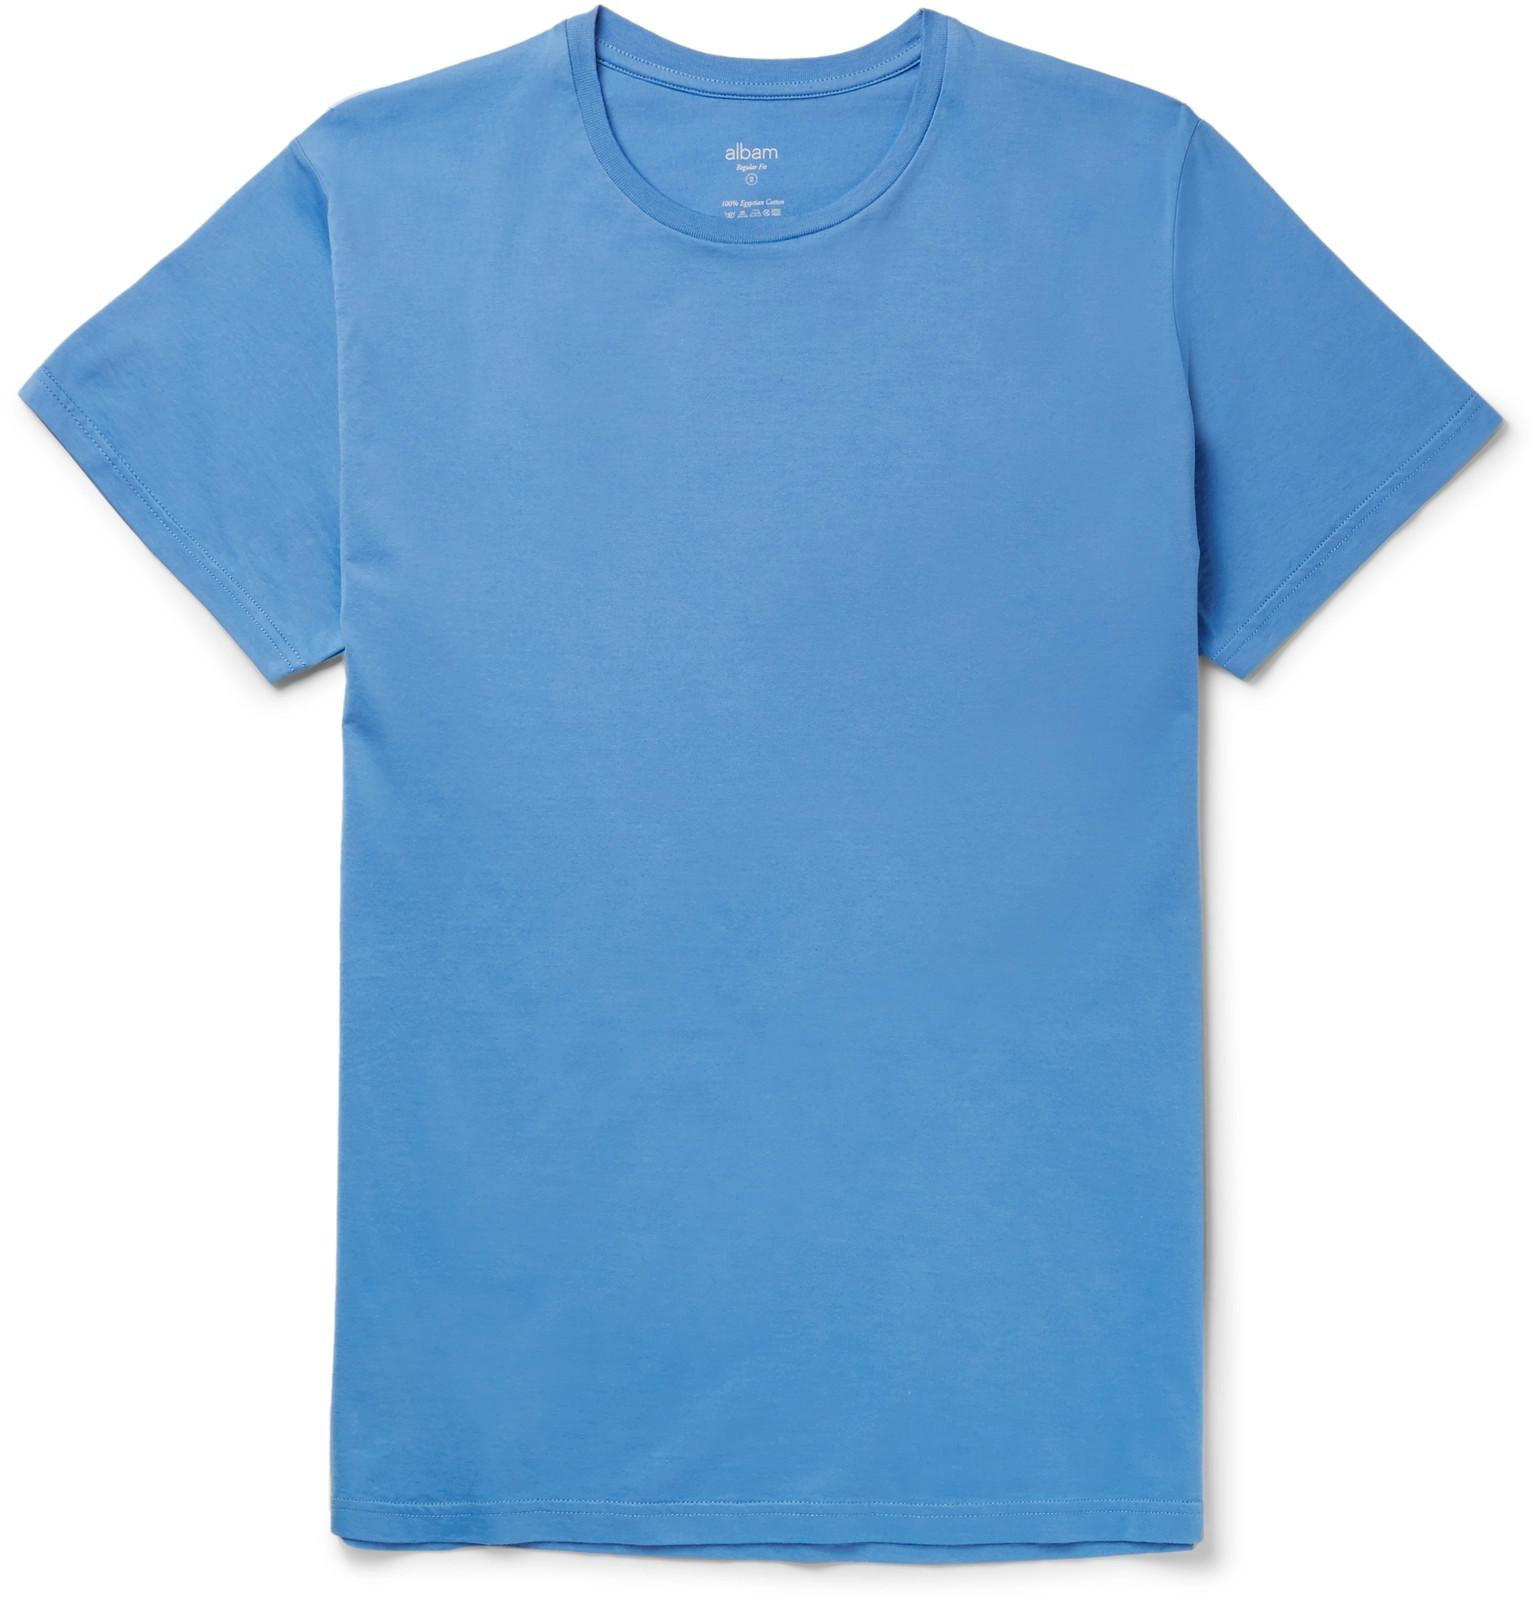 Albam egyptian cotton jersey t shirt in blue for men lyst for Mens egyptian cotton dress shirts